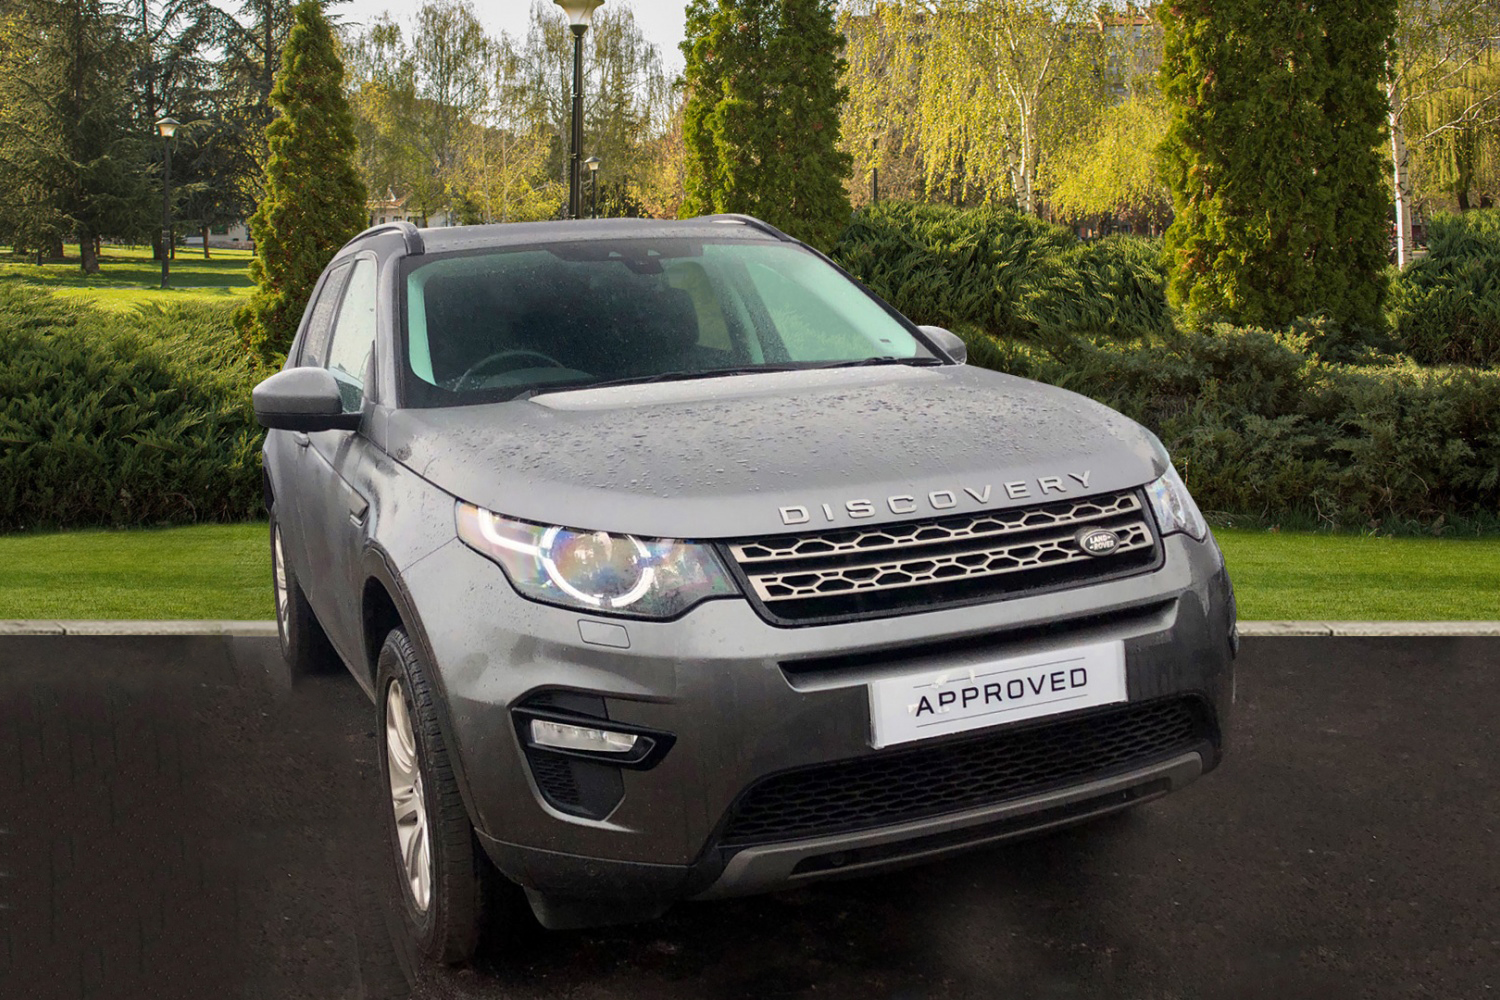 Land Rover Discovery Sport 2.0 TD4 SE TECH Diesel 5 door 4x4 (2016) image